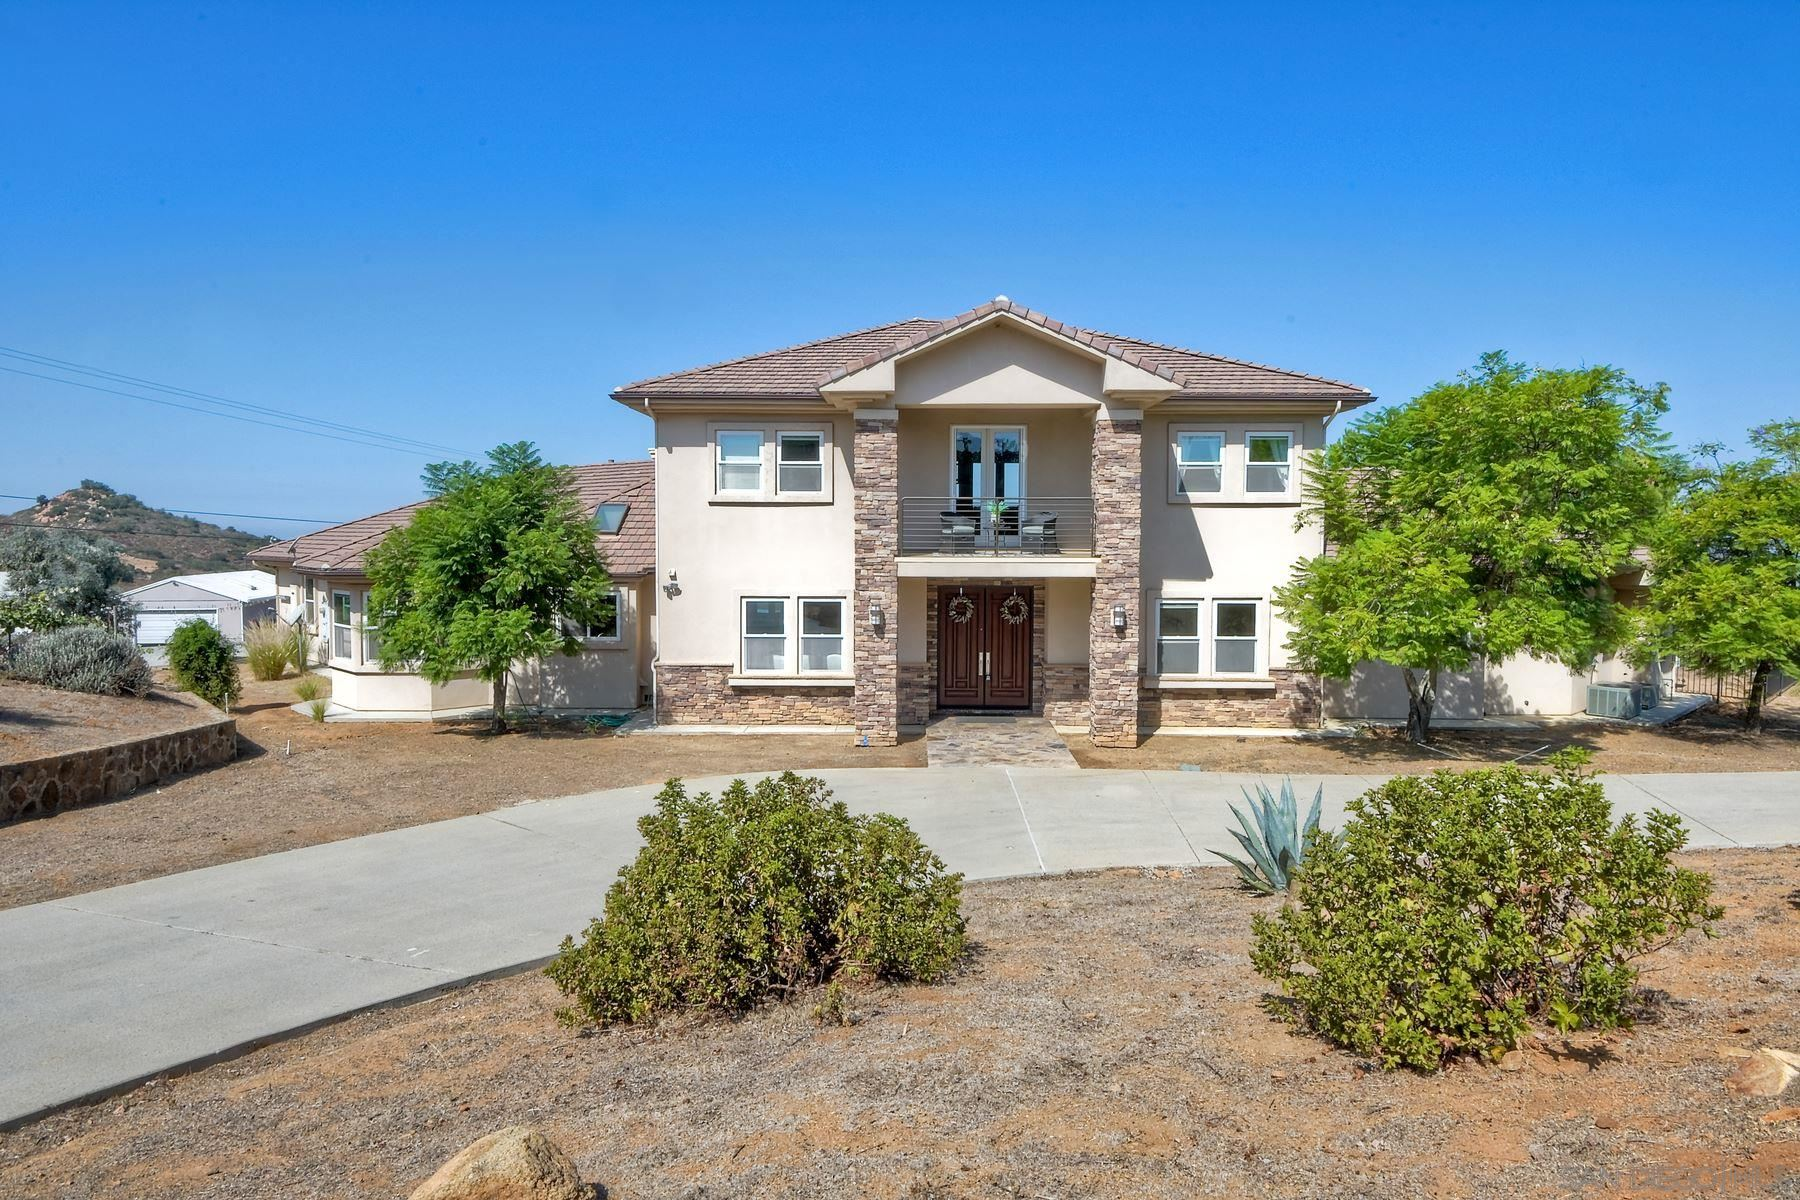 Photo of 19348 Via Cuesta, Ramona, CA 92065 (MLS # 200046526)